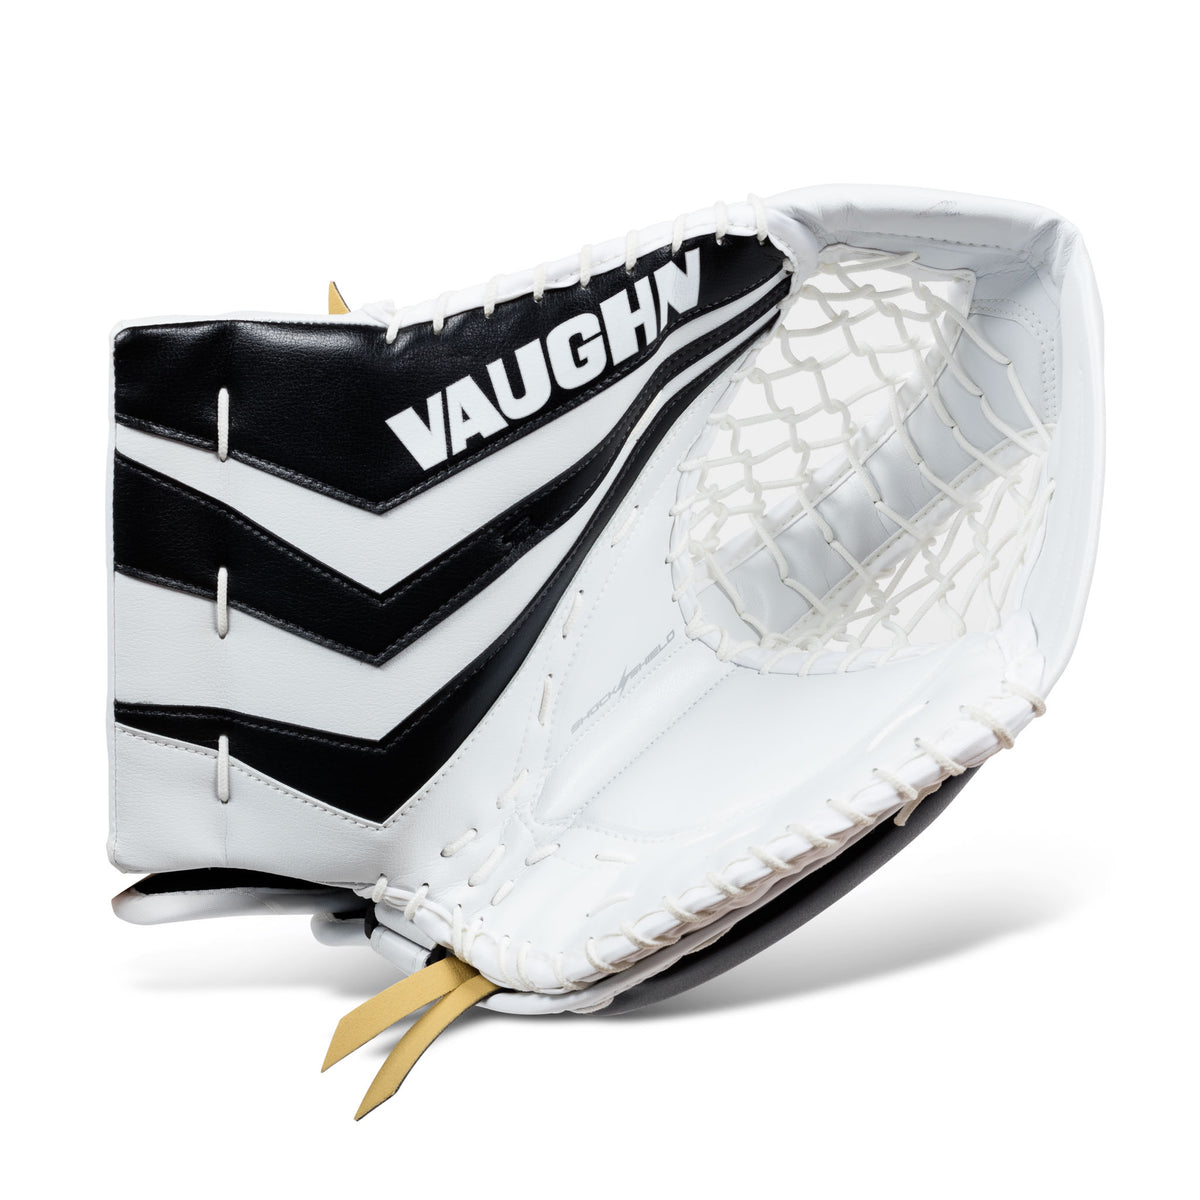 Vaughn Ventus SLR2-ST Pro Carbon Senior Goalie Catcher